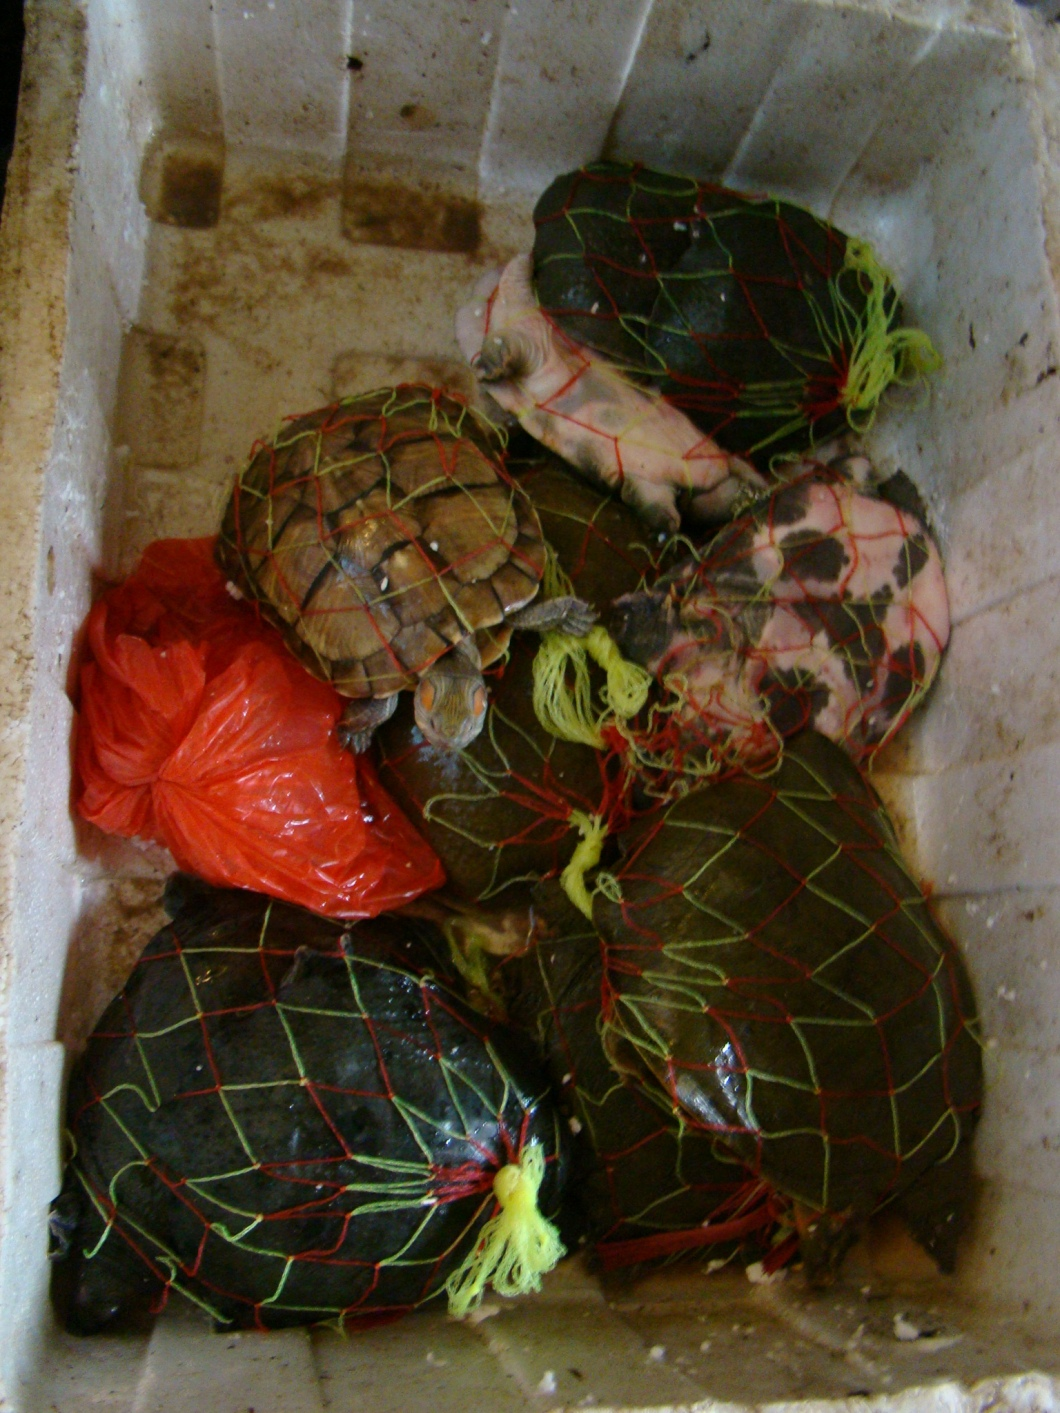 Live Turtles Packaged and ready for sale